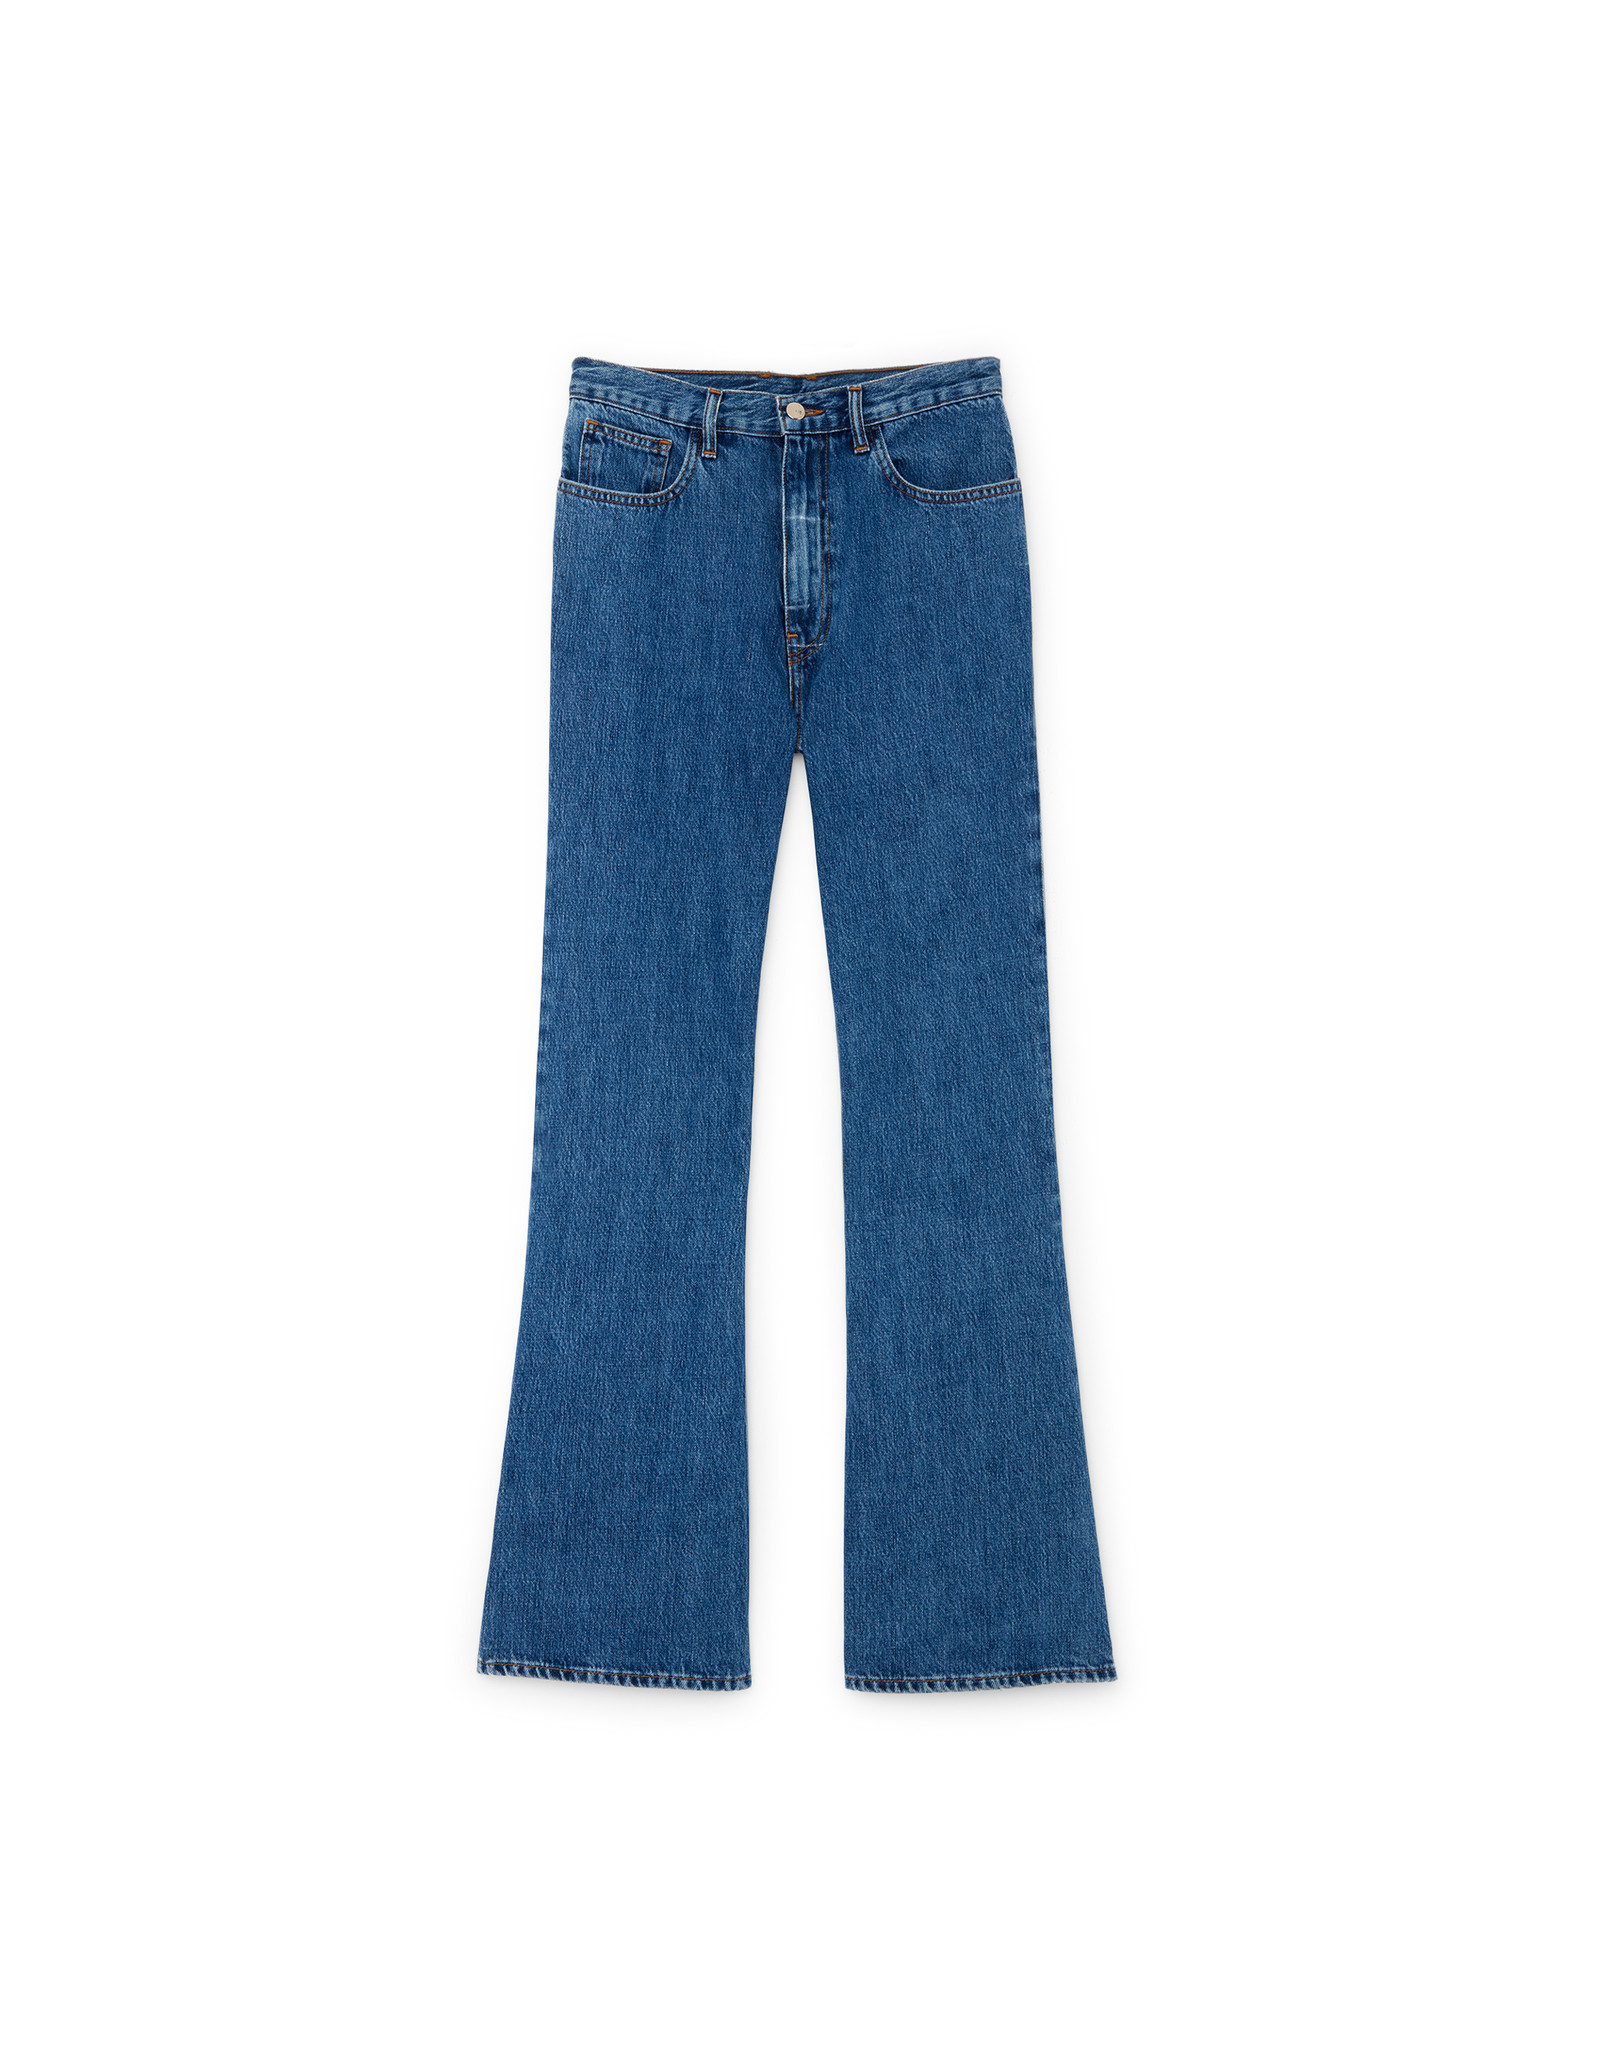 G. Label G. Label Griffin Bootcut Jeans (Color: Medium Blue Wash, Size: 27)